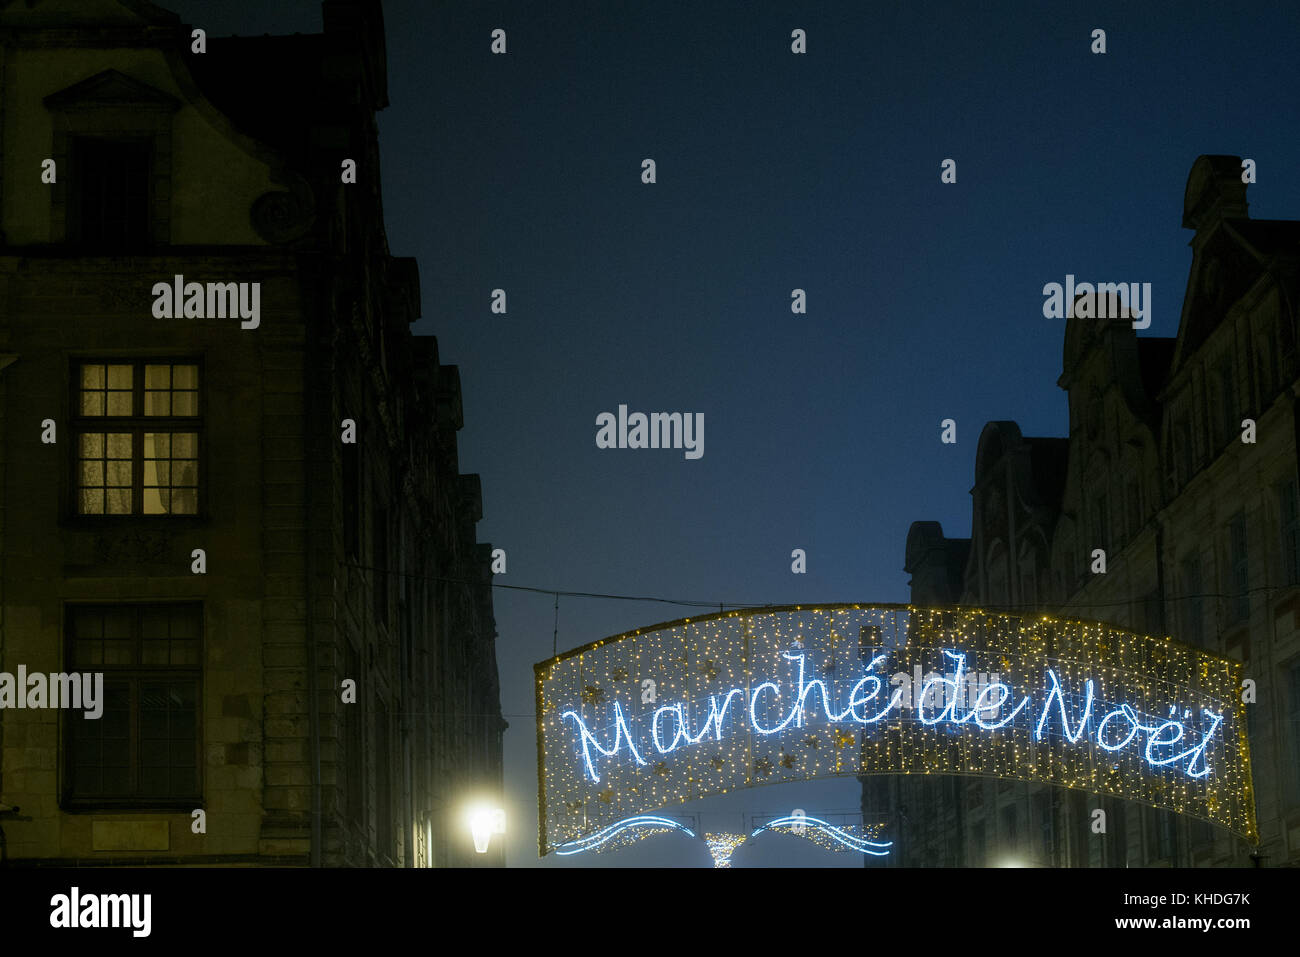 Illuminated sign advertising an outdoor Christmas market in French Stock Photo